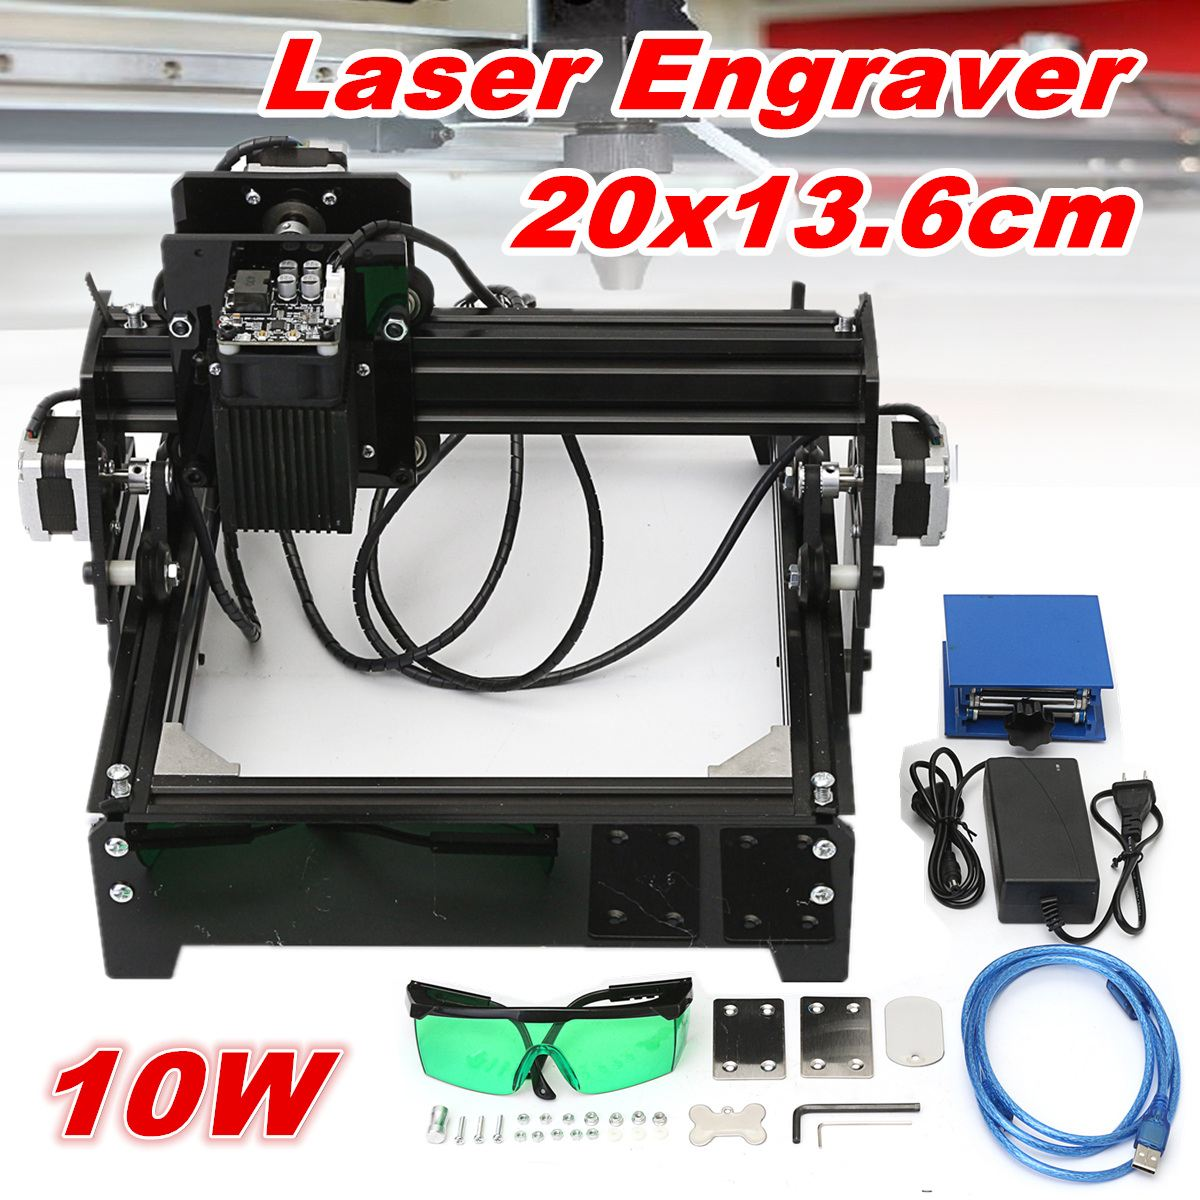 10W USB Desktop Metal Stone Wood CNC Laser Engraver Marking Engraving Machine Engraving Area 20 x 14 cm + Protective Glasses 10w 15w diy cnc laser marking machine work area 14 20cm for stainless steel wood aluminum etc metal material